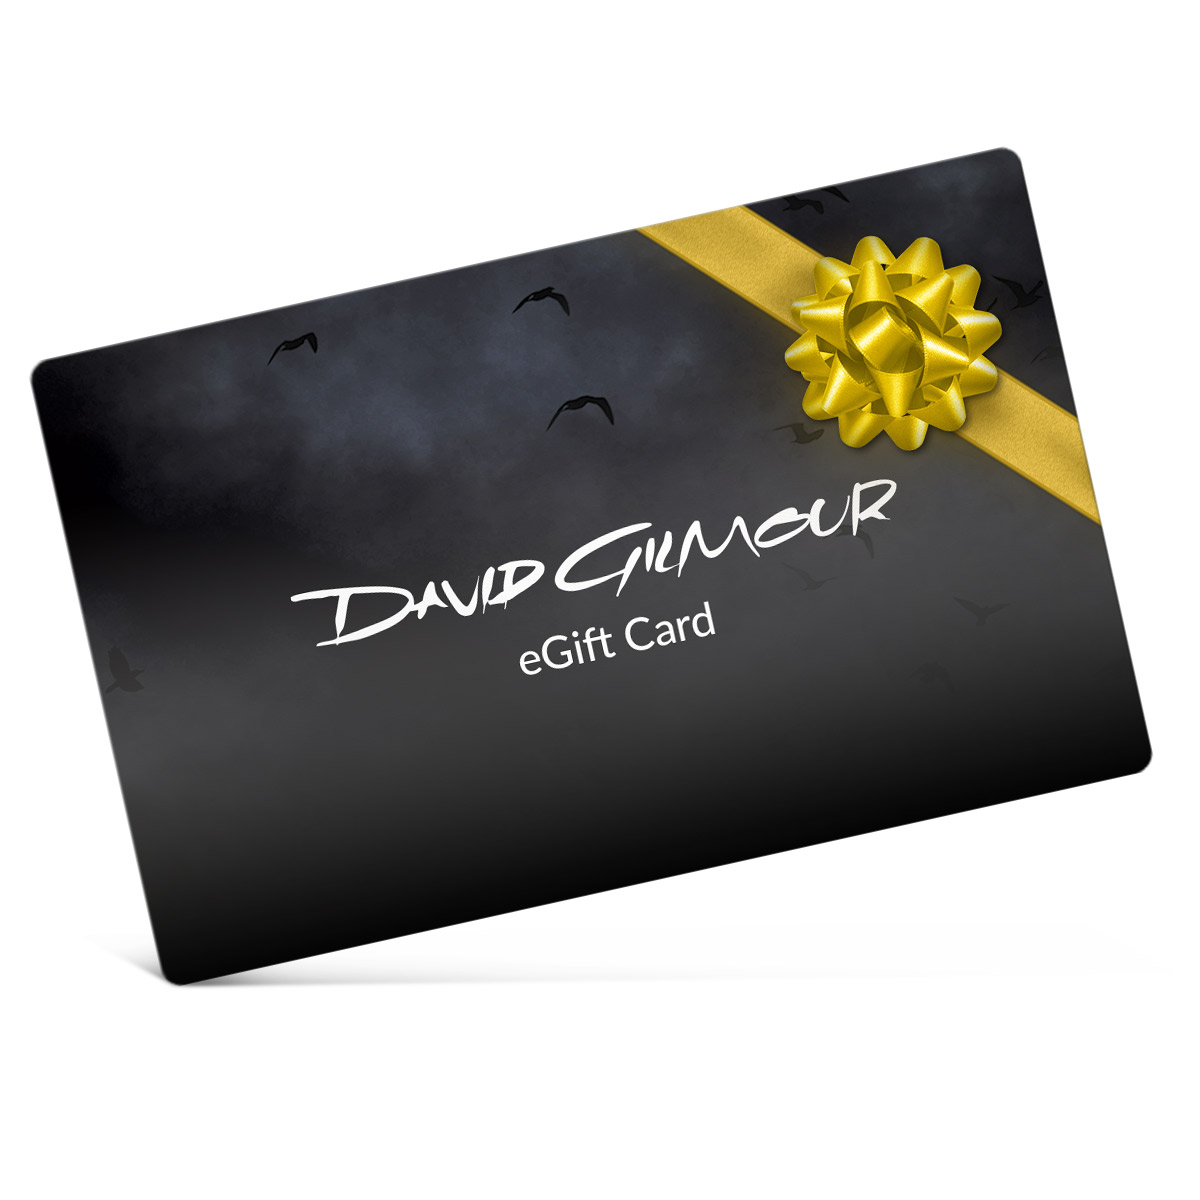 David Gilmour Electronic Gift Certificate